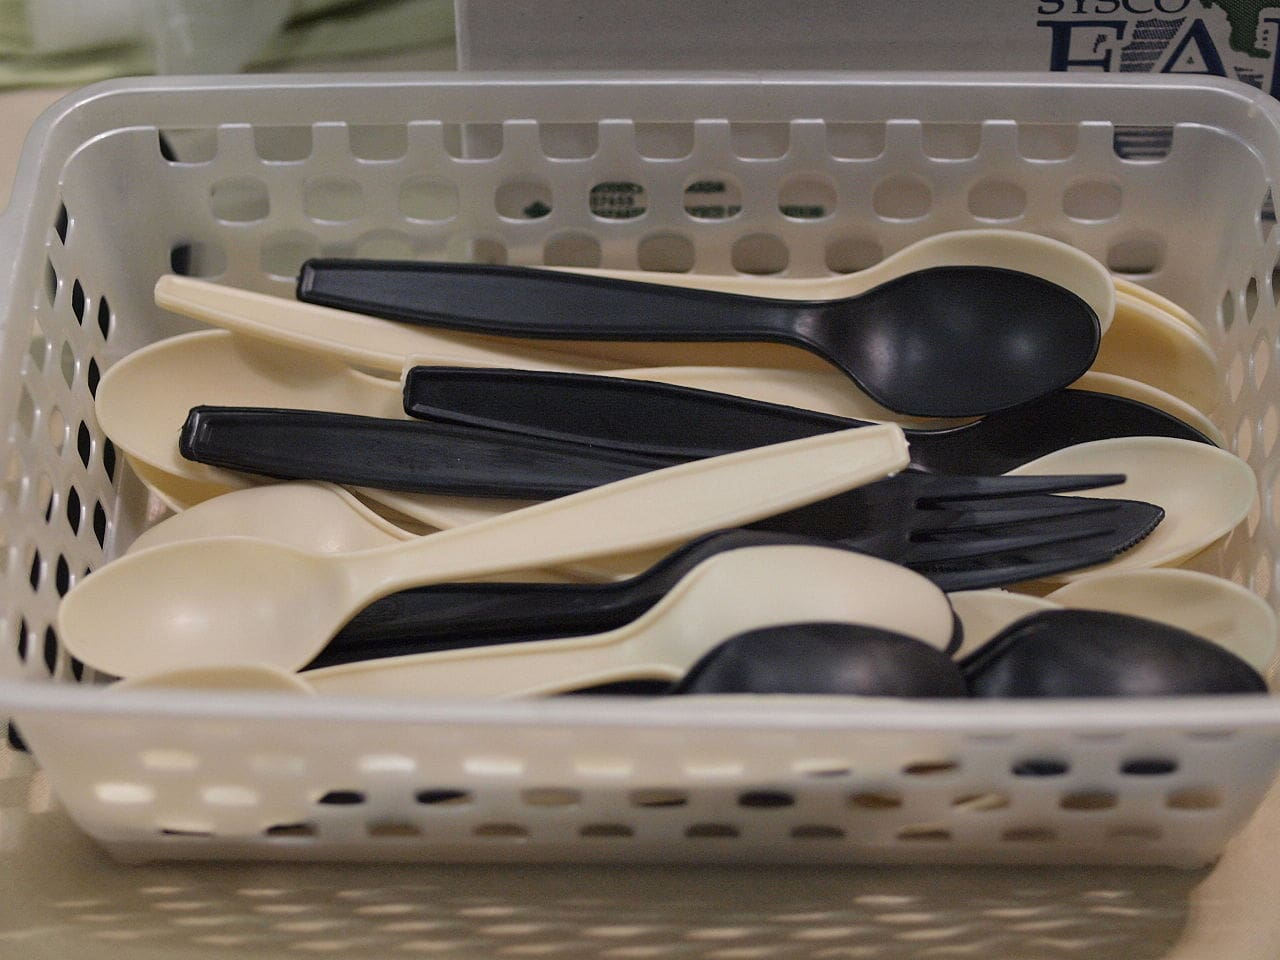 biodegradable cutlery by Andrea Flickr